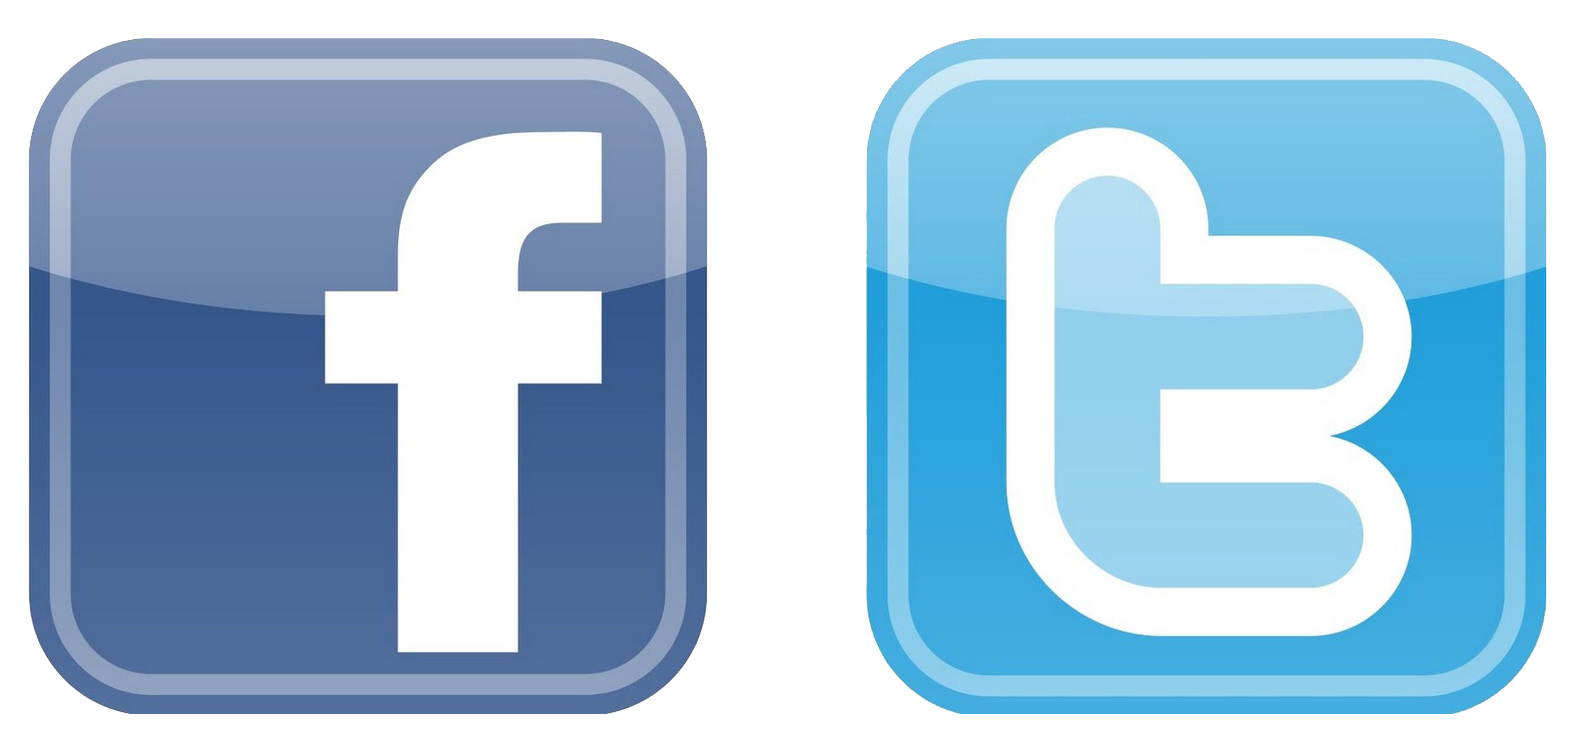 facebook and twitter logo png images #32224